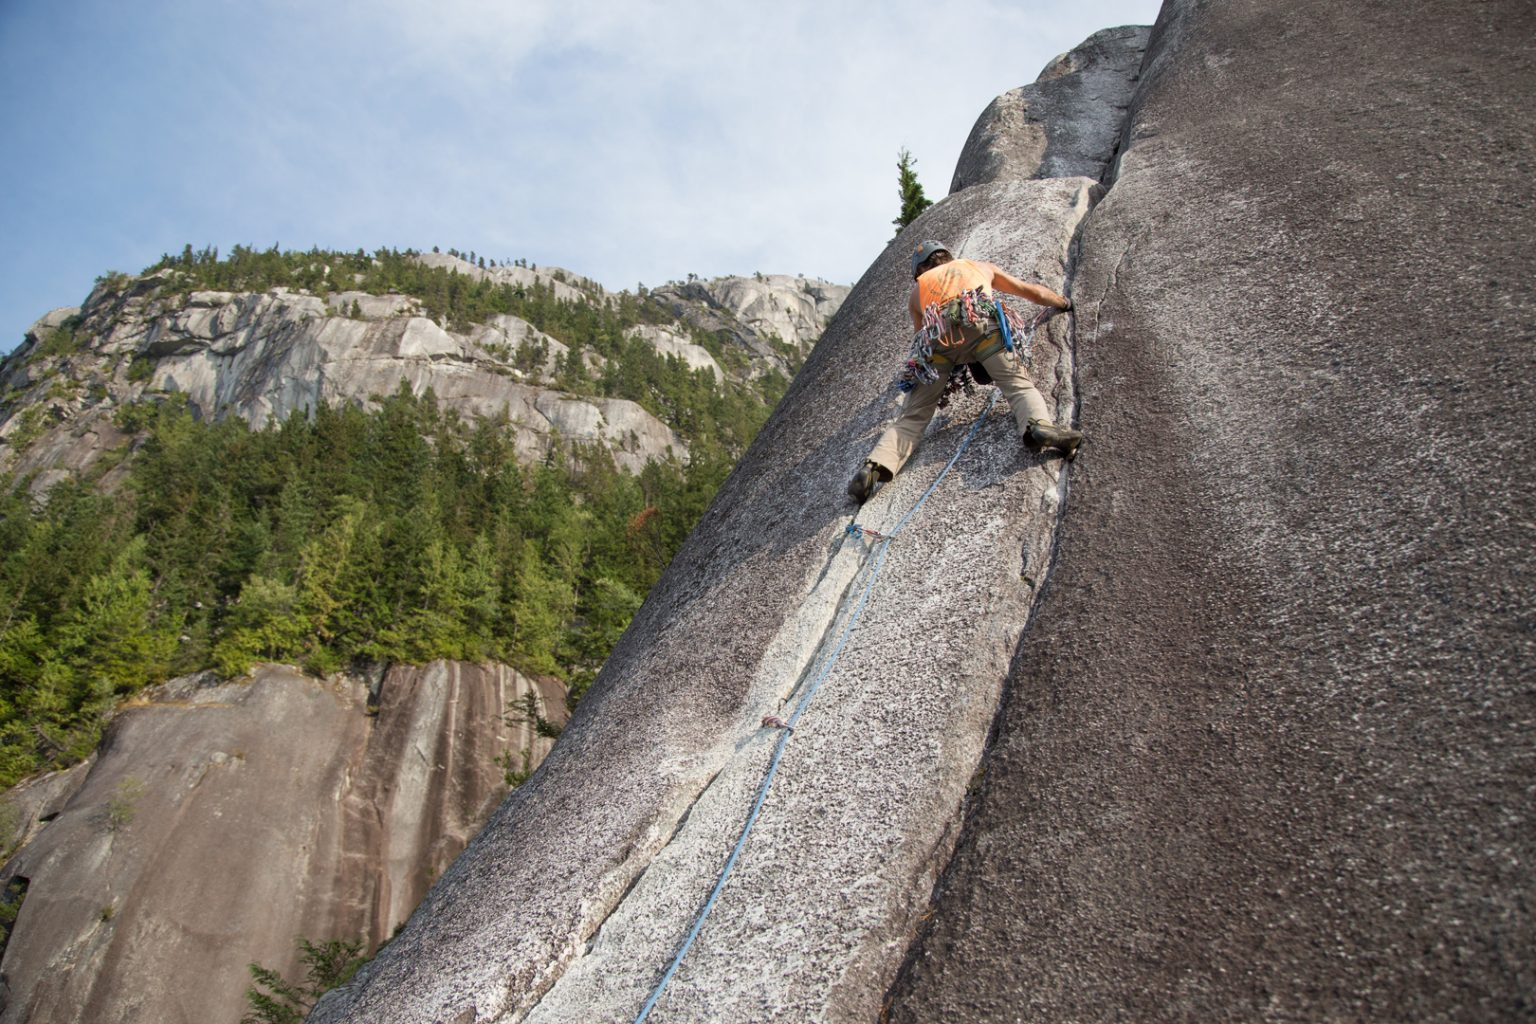 Vitaliy leading Memorial Crack